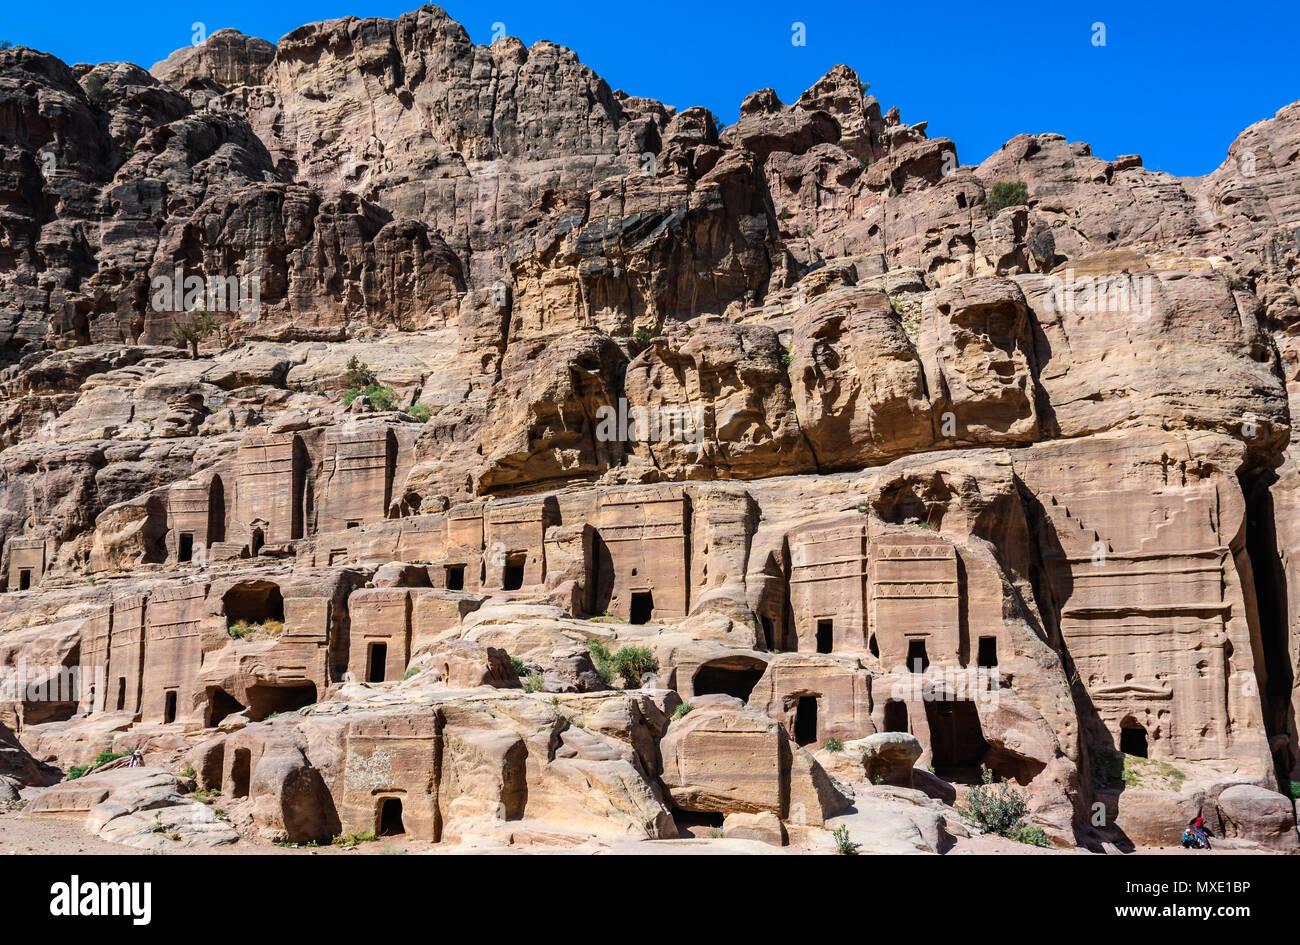 Street of facades in the Lost City of Petra, Jordan - Stock Image